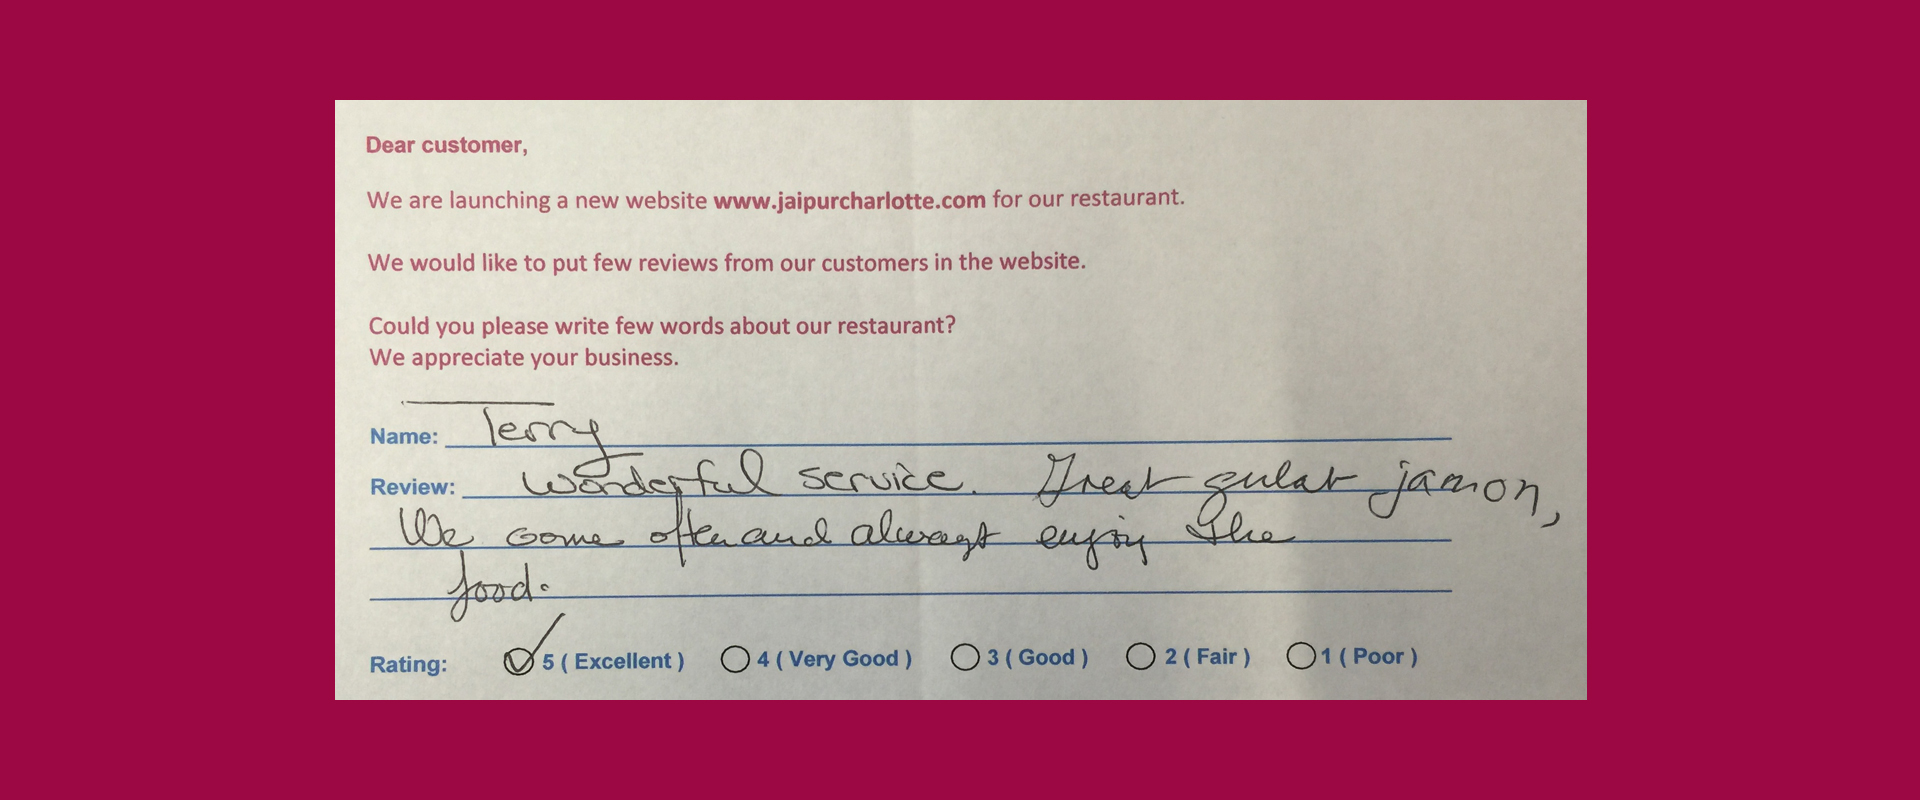 Jaipur Indian Restaurant Customer Review by Terry - Rating 5 out of 5